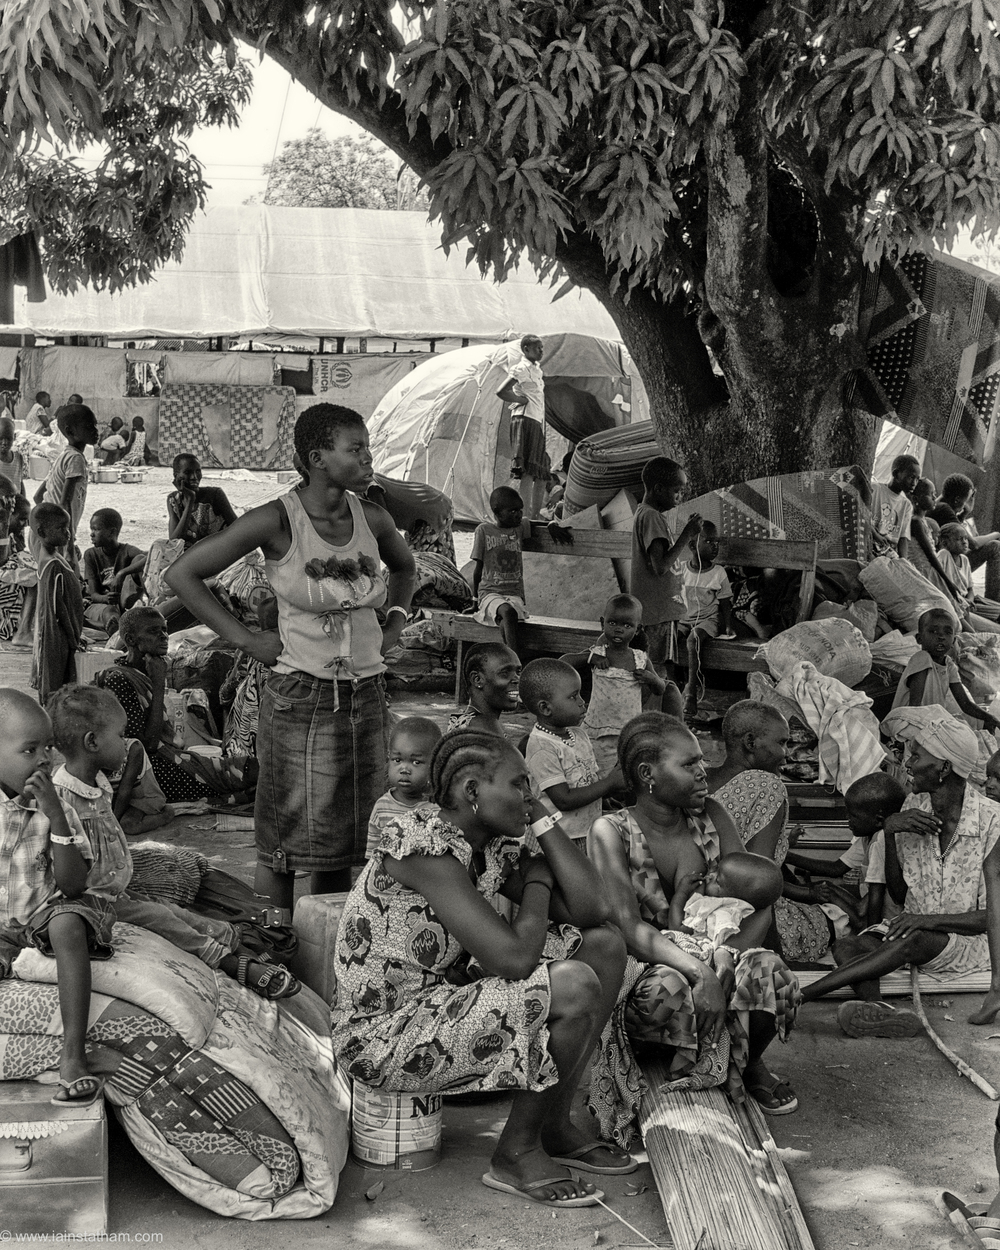 ug - south sudan refugees - dziapi - bw-8.jpg